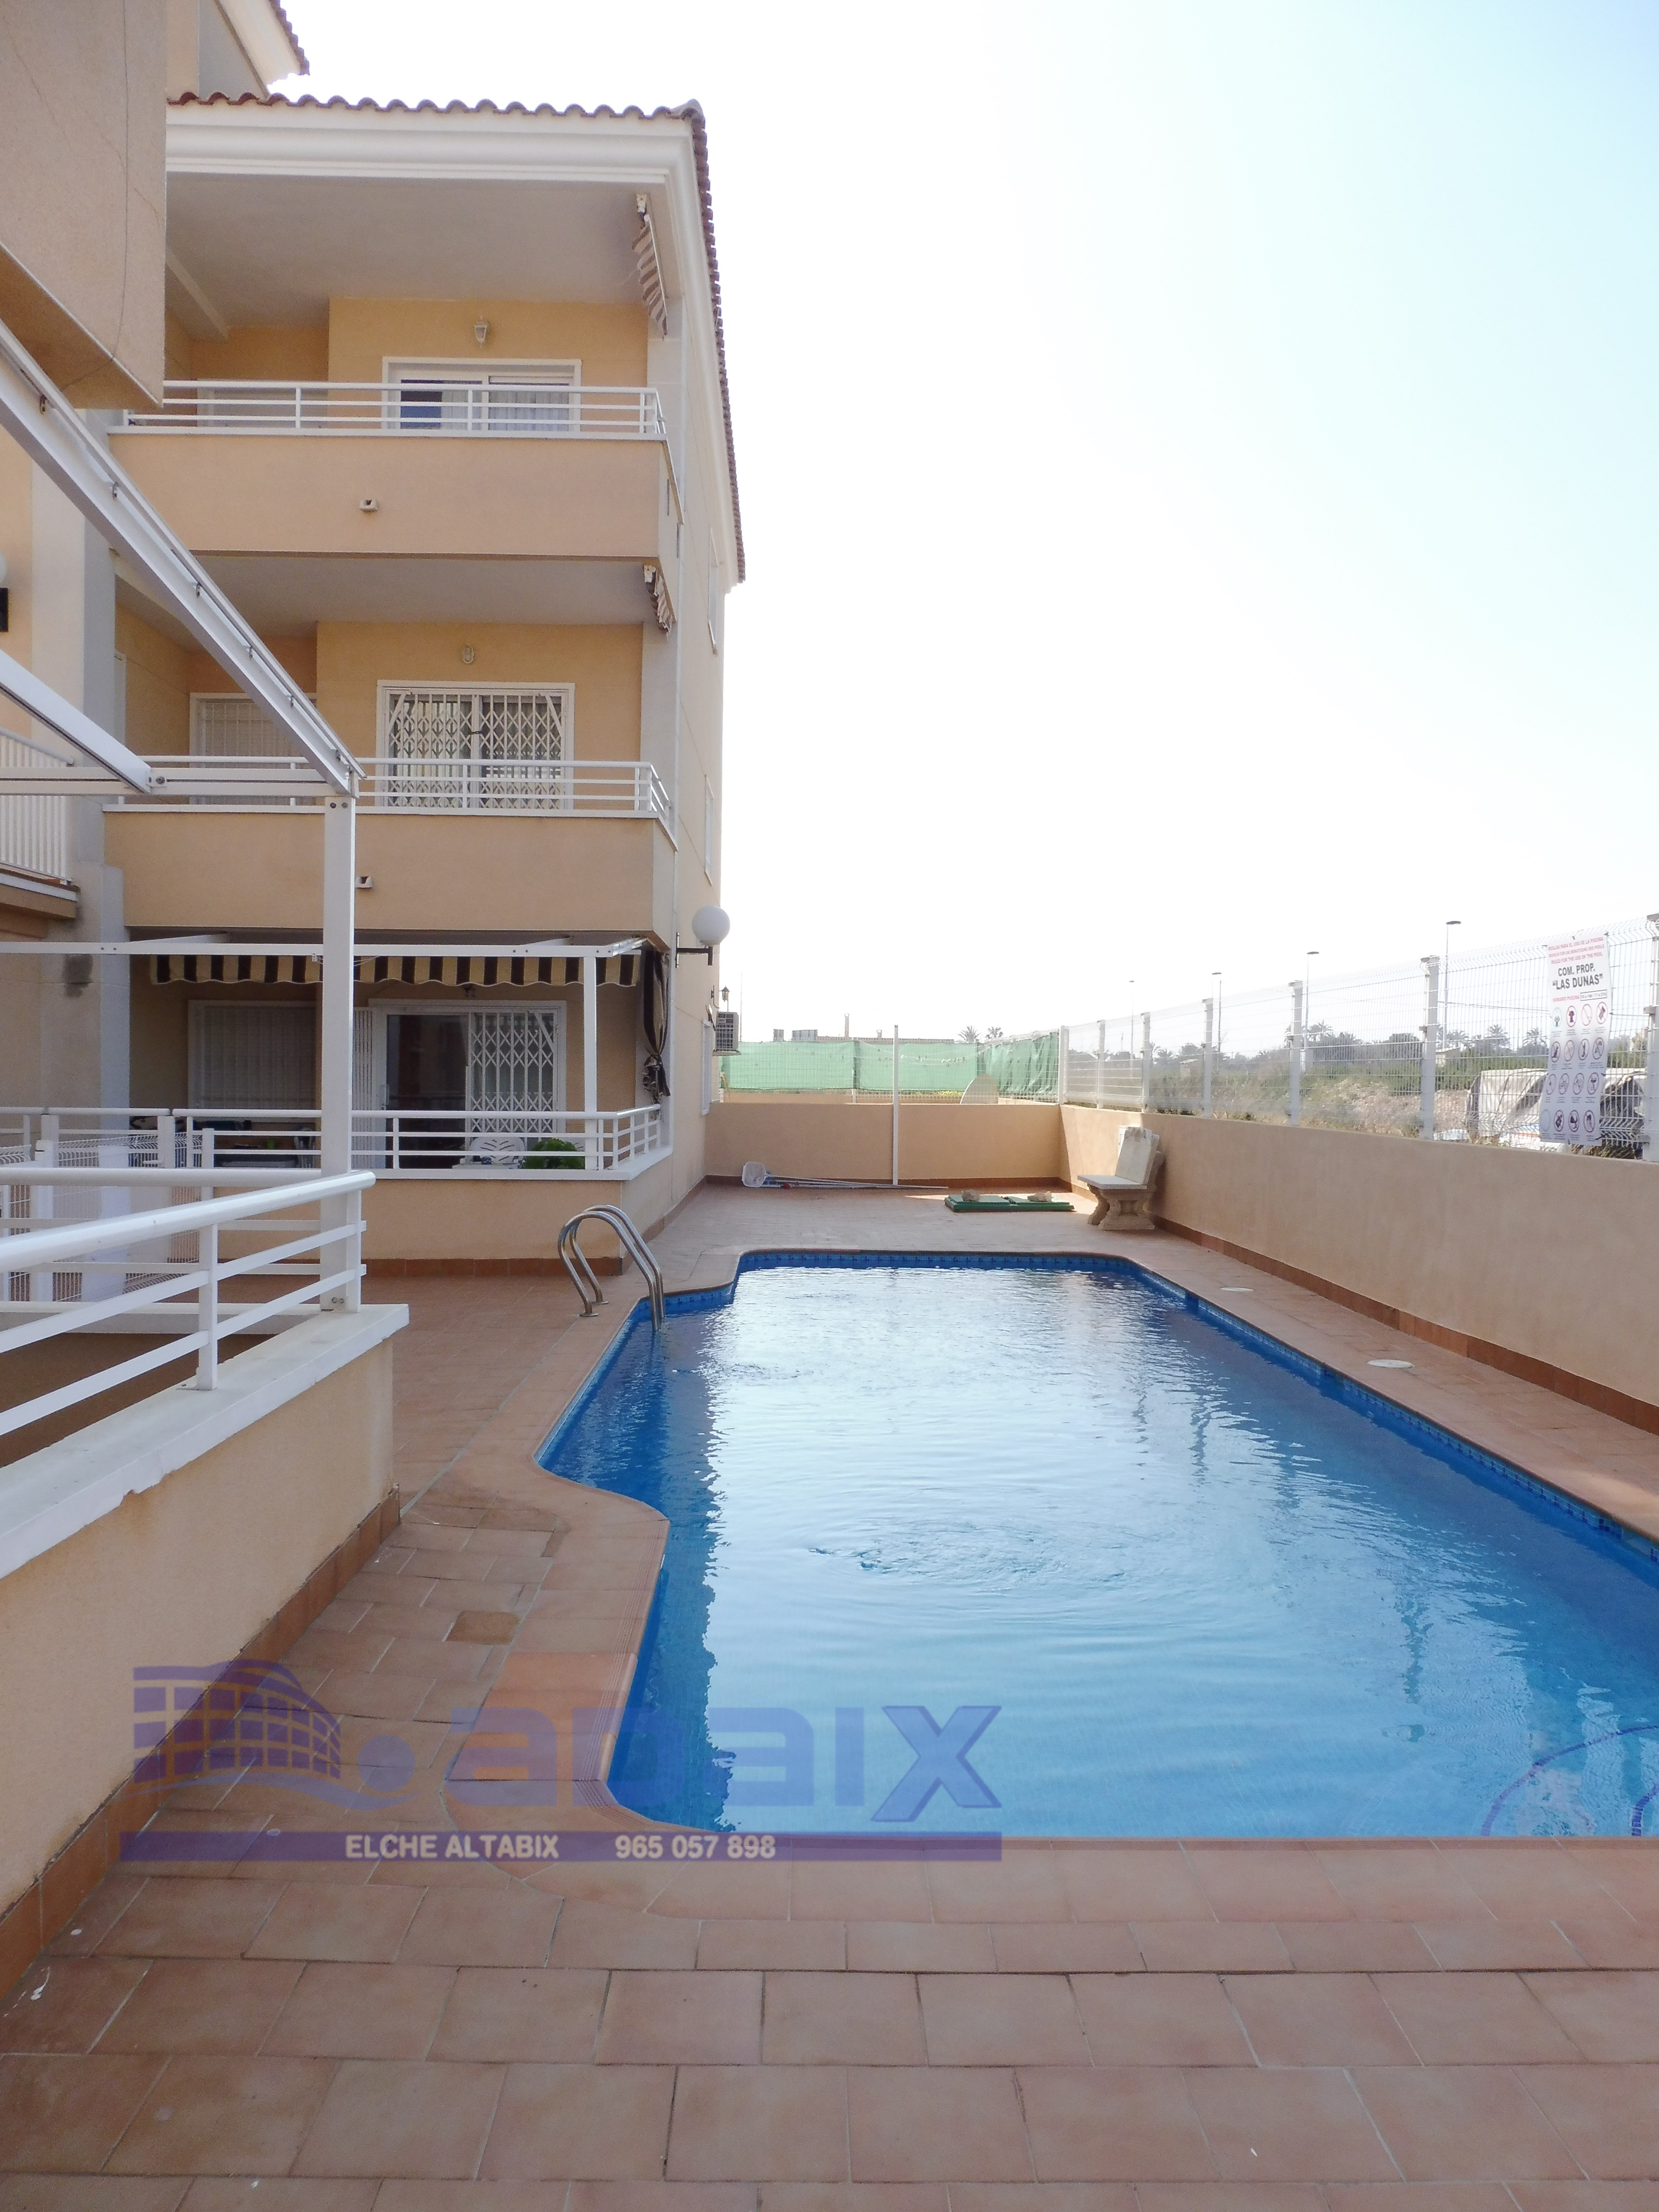 Bungalow in Rent in Elche